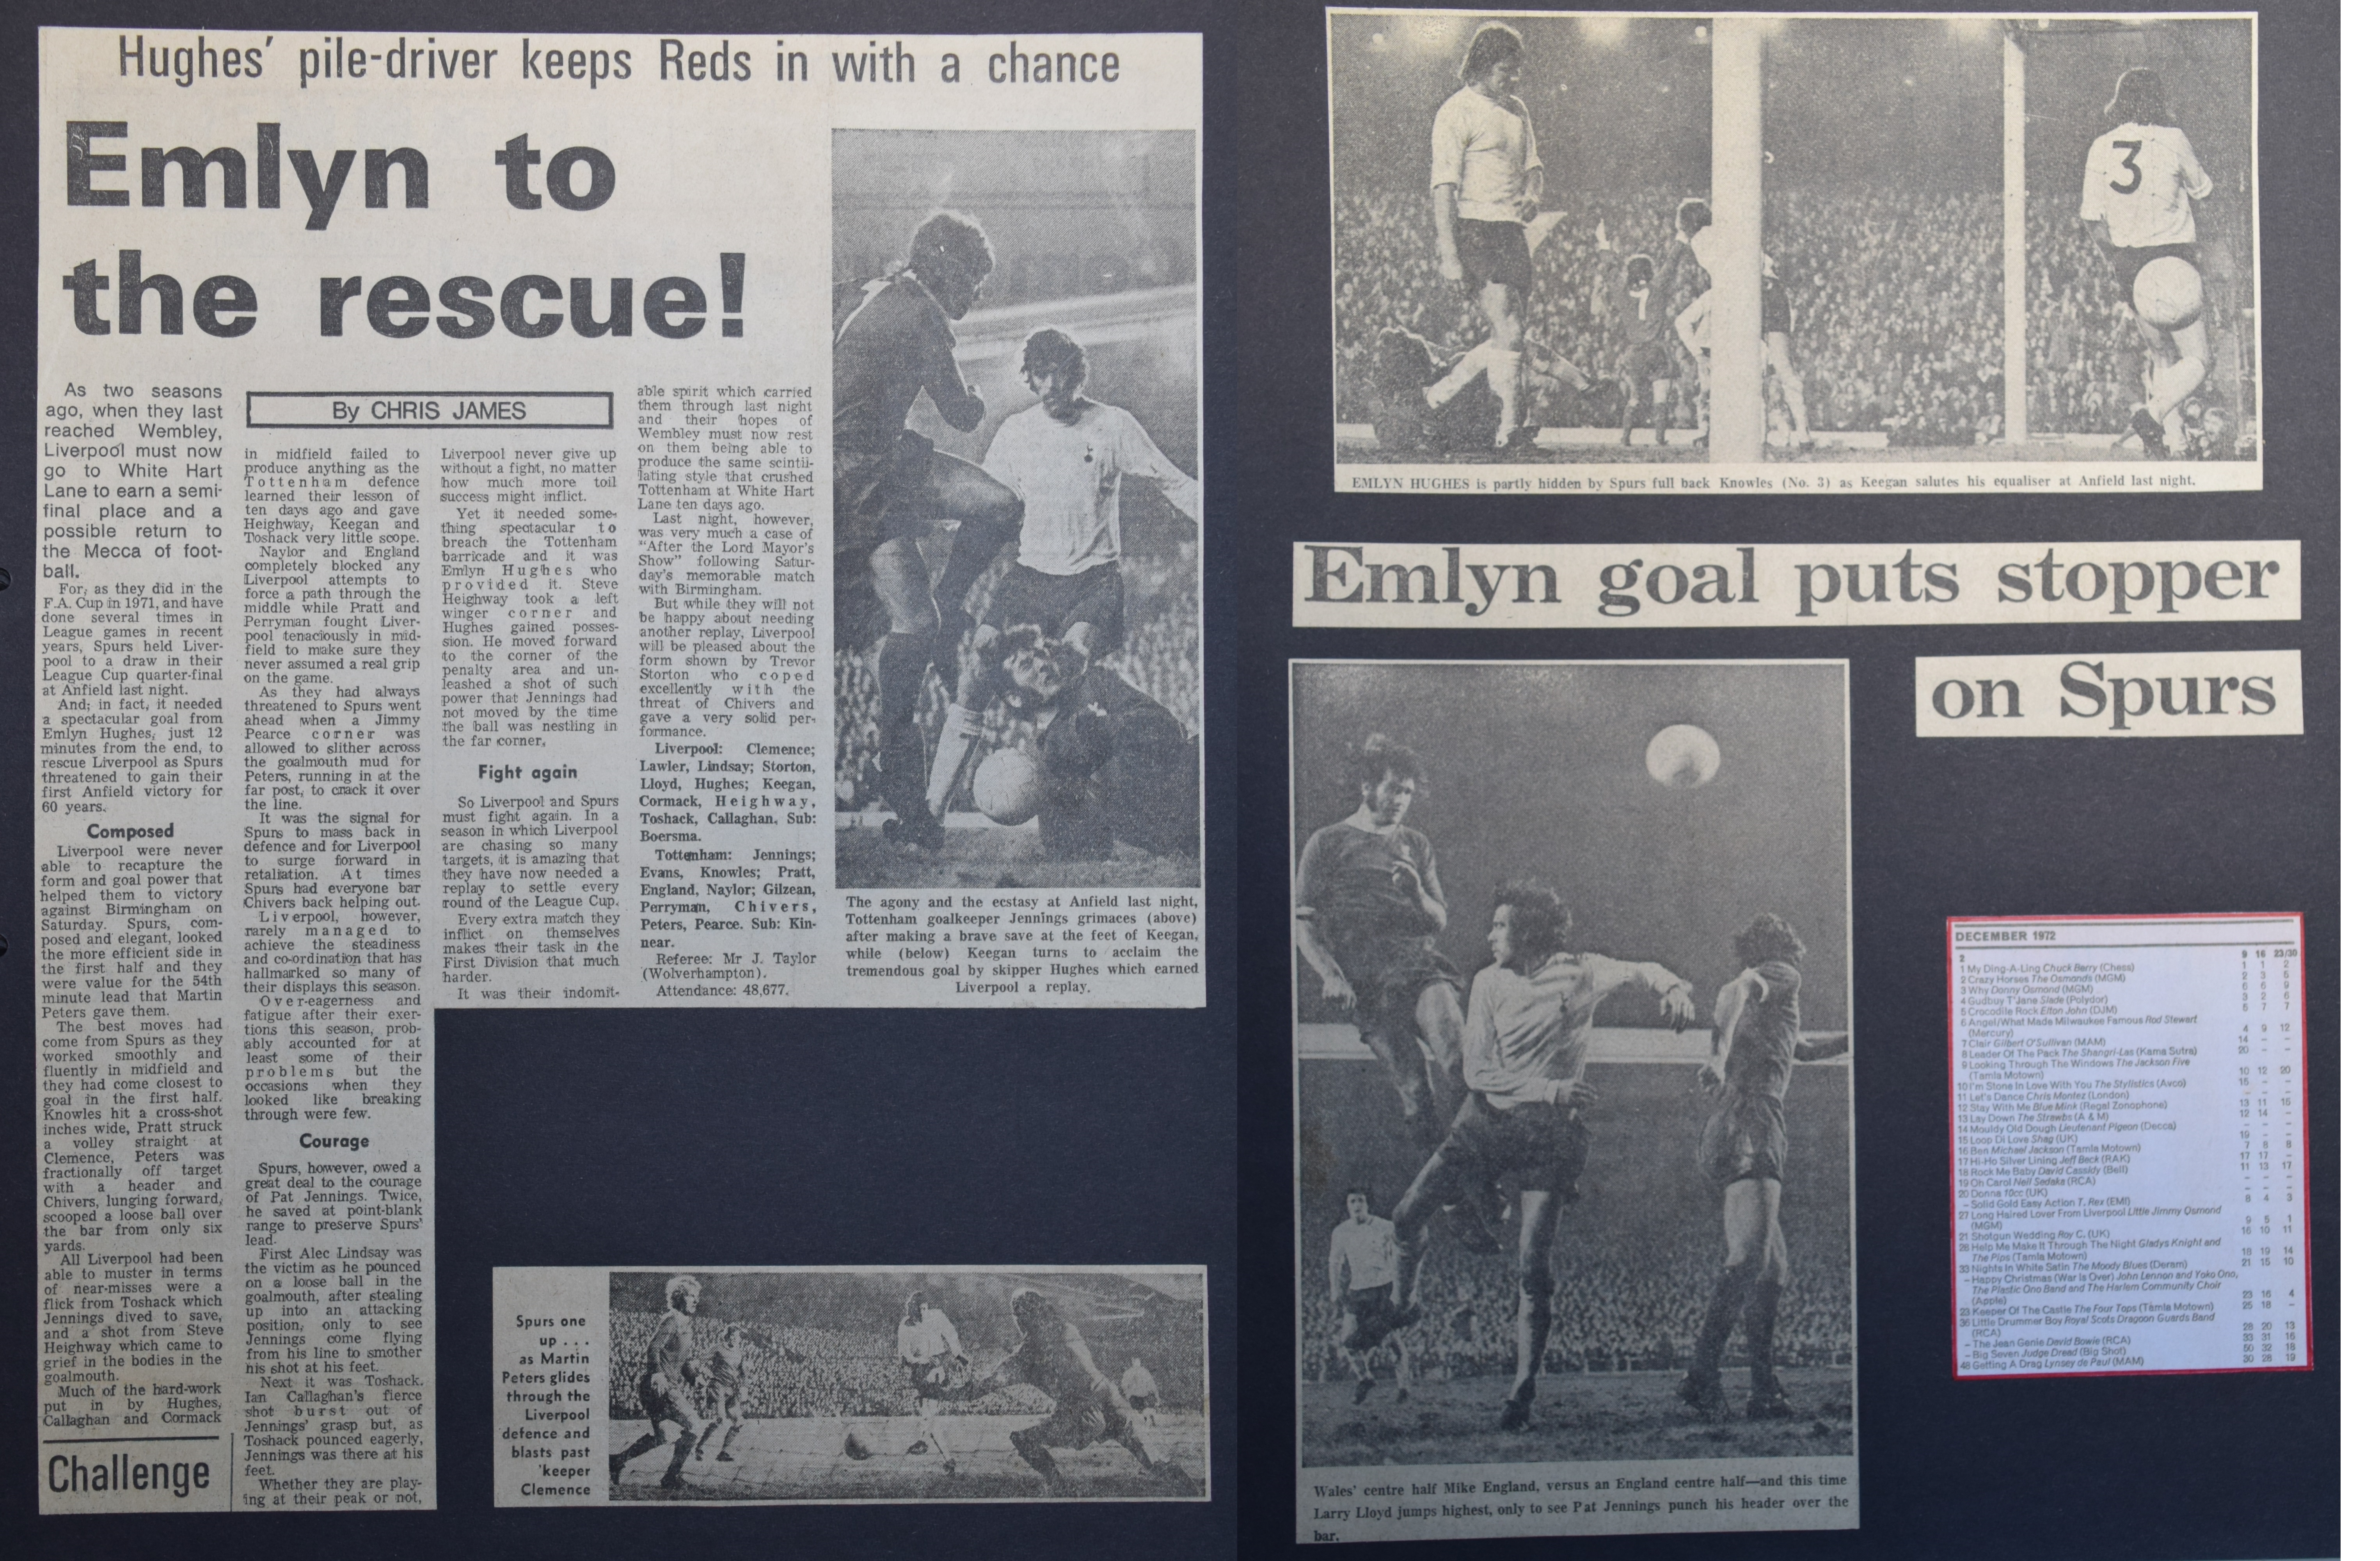 Emlyn to the rescue - 4 December 1972